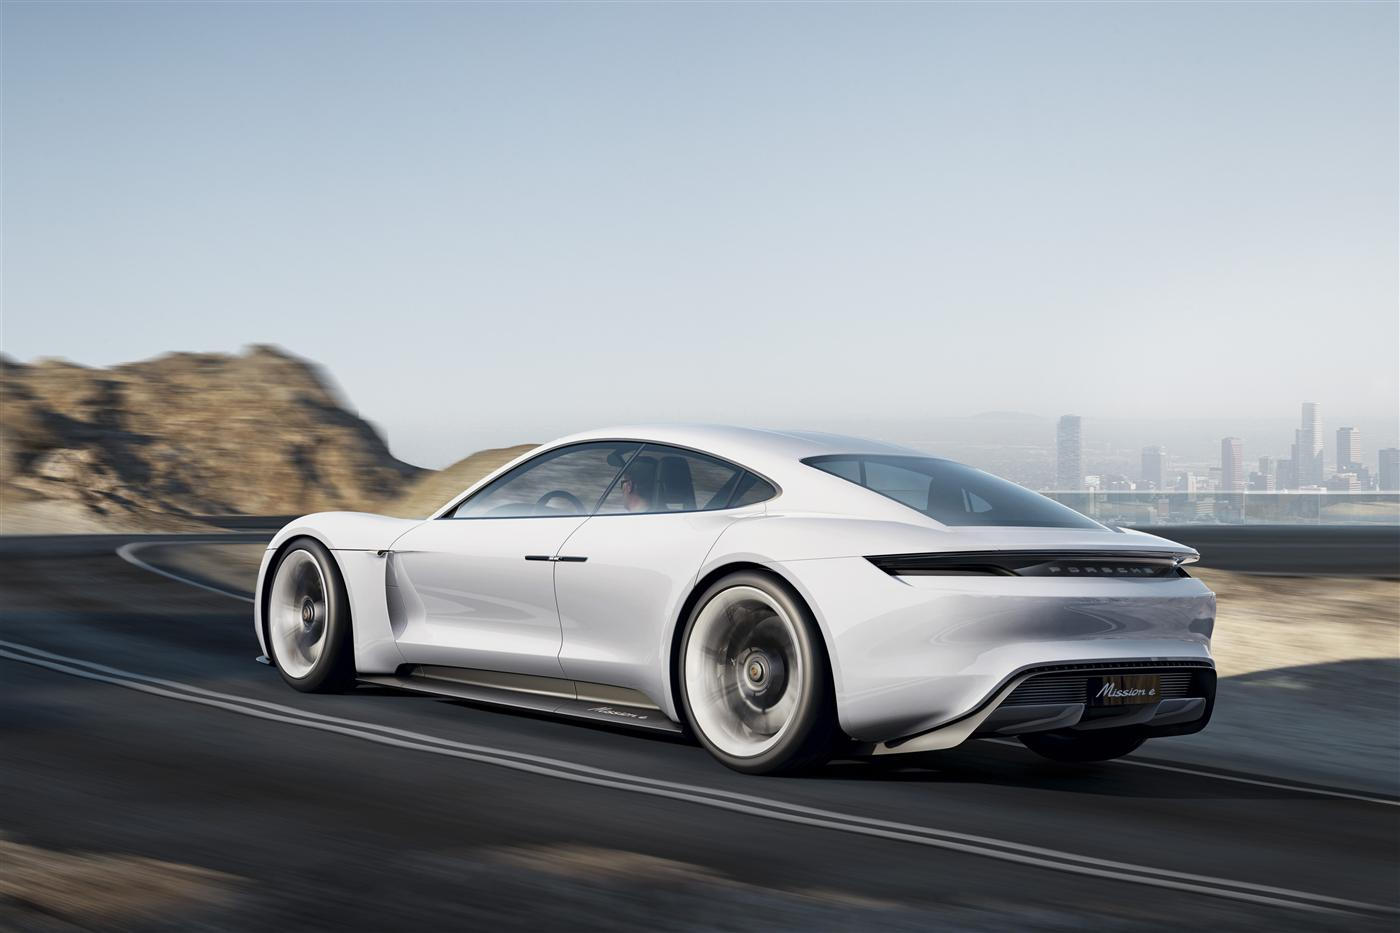 The Mission E: Porsche takes on Tesla 4